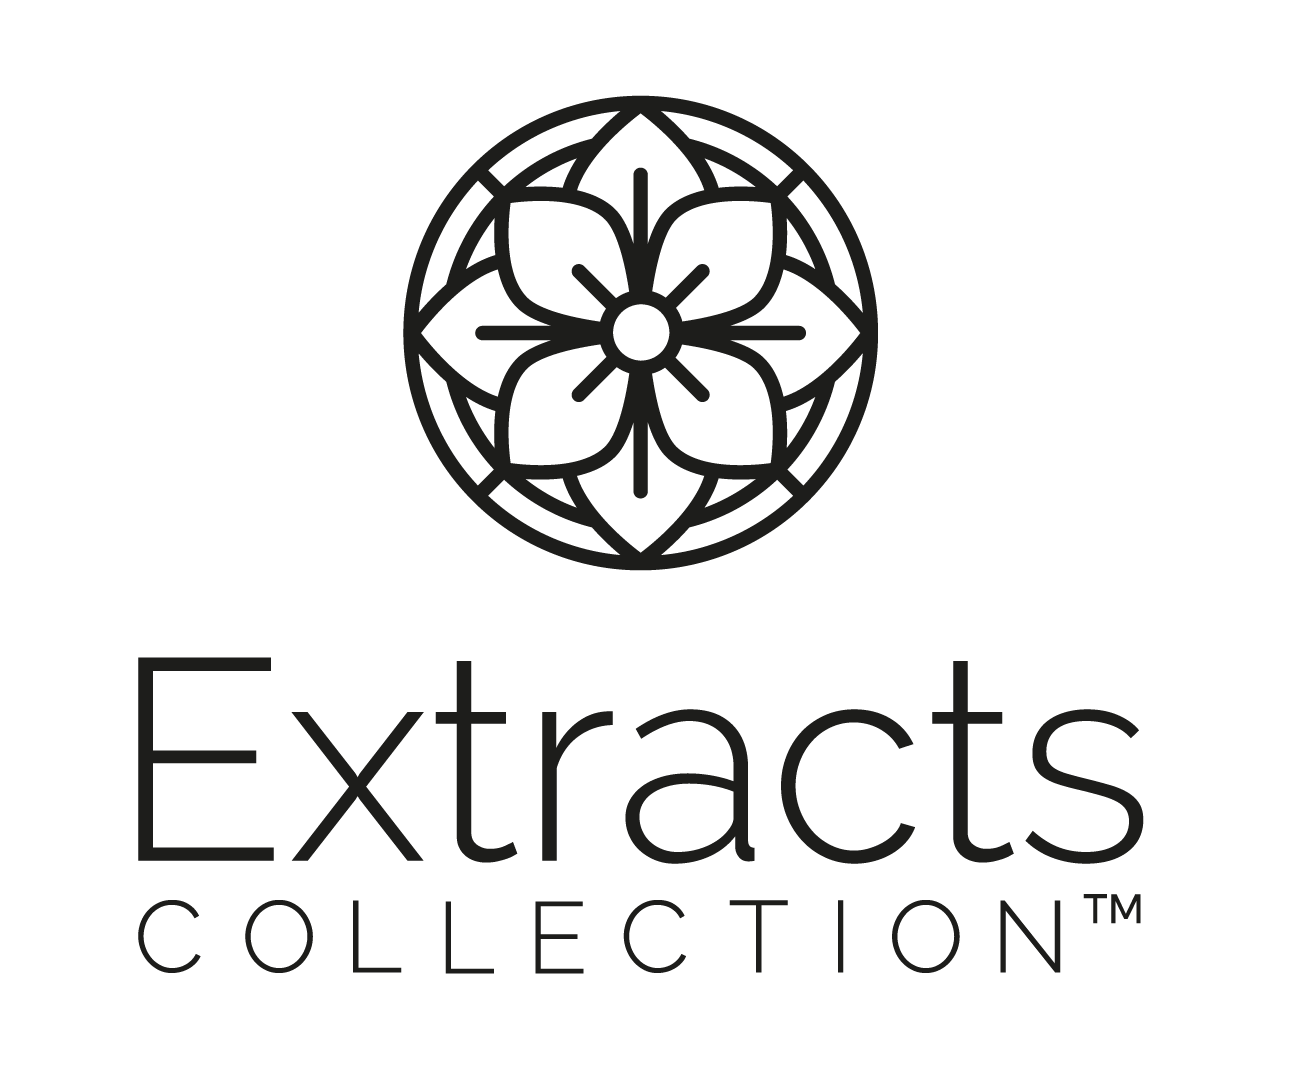 Extracts Pure Collection